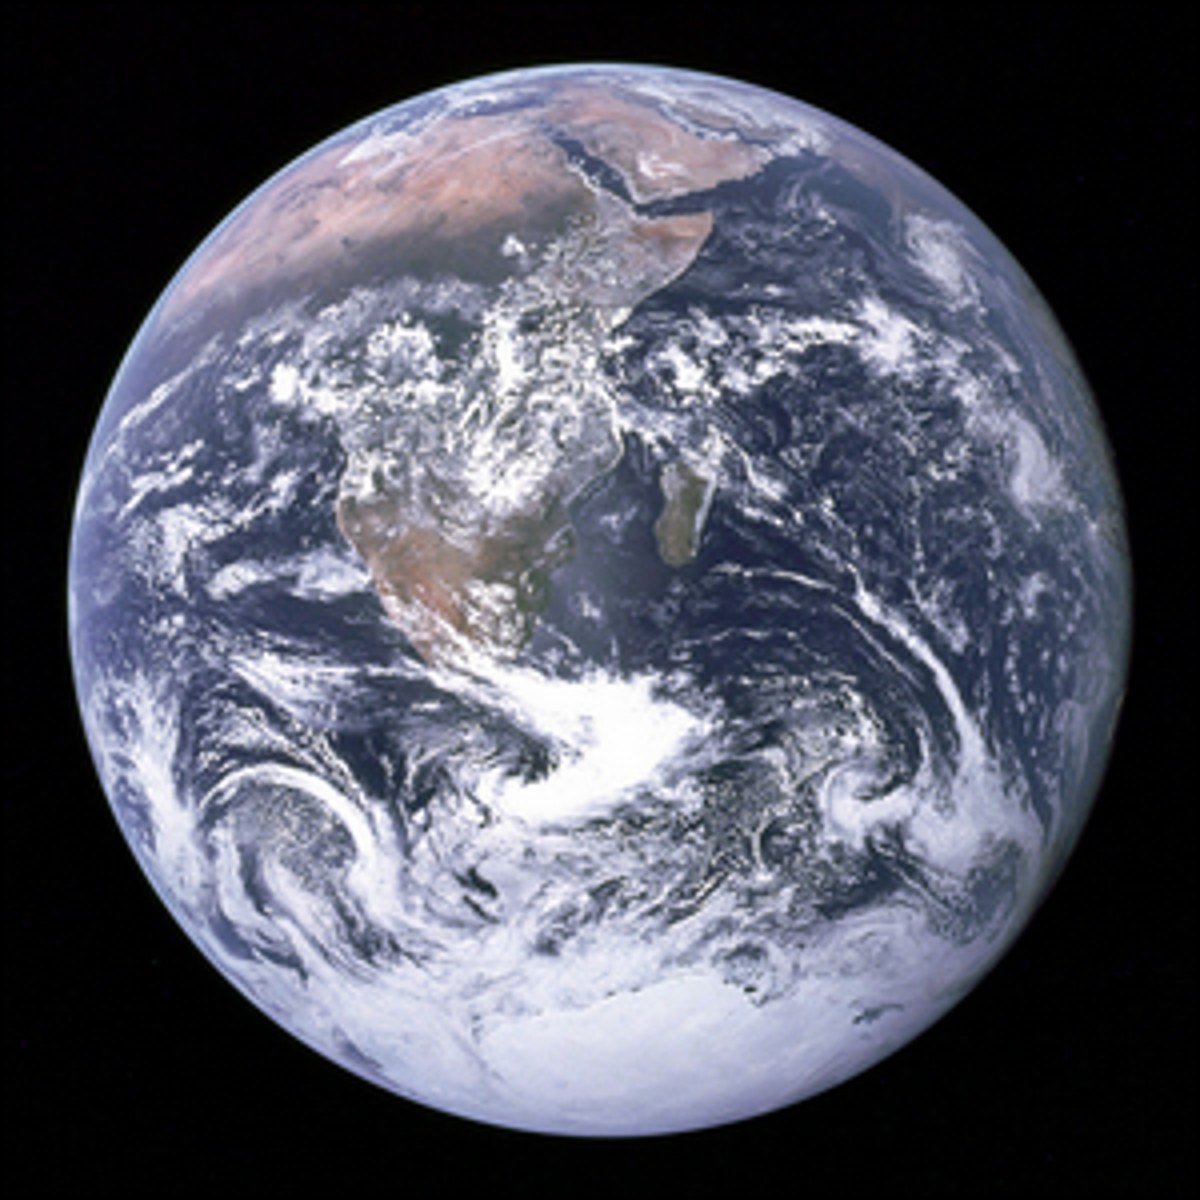 The Earth, as seen from the Apollo 17 spacecraft en route to the Moon.